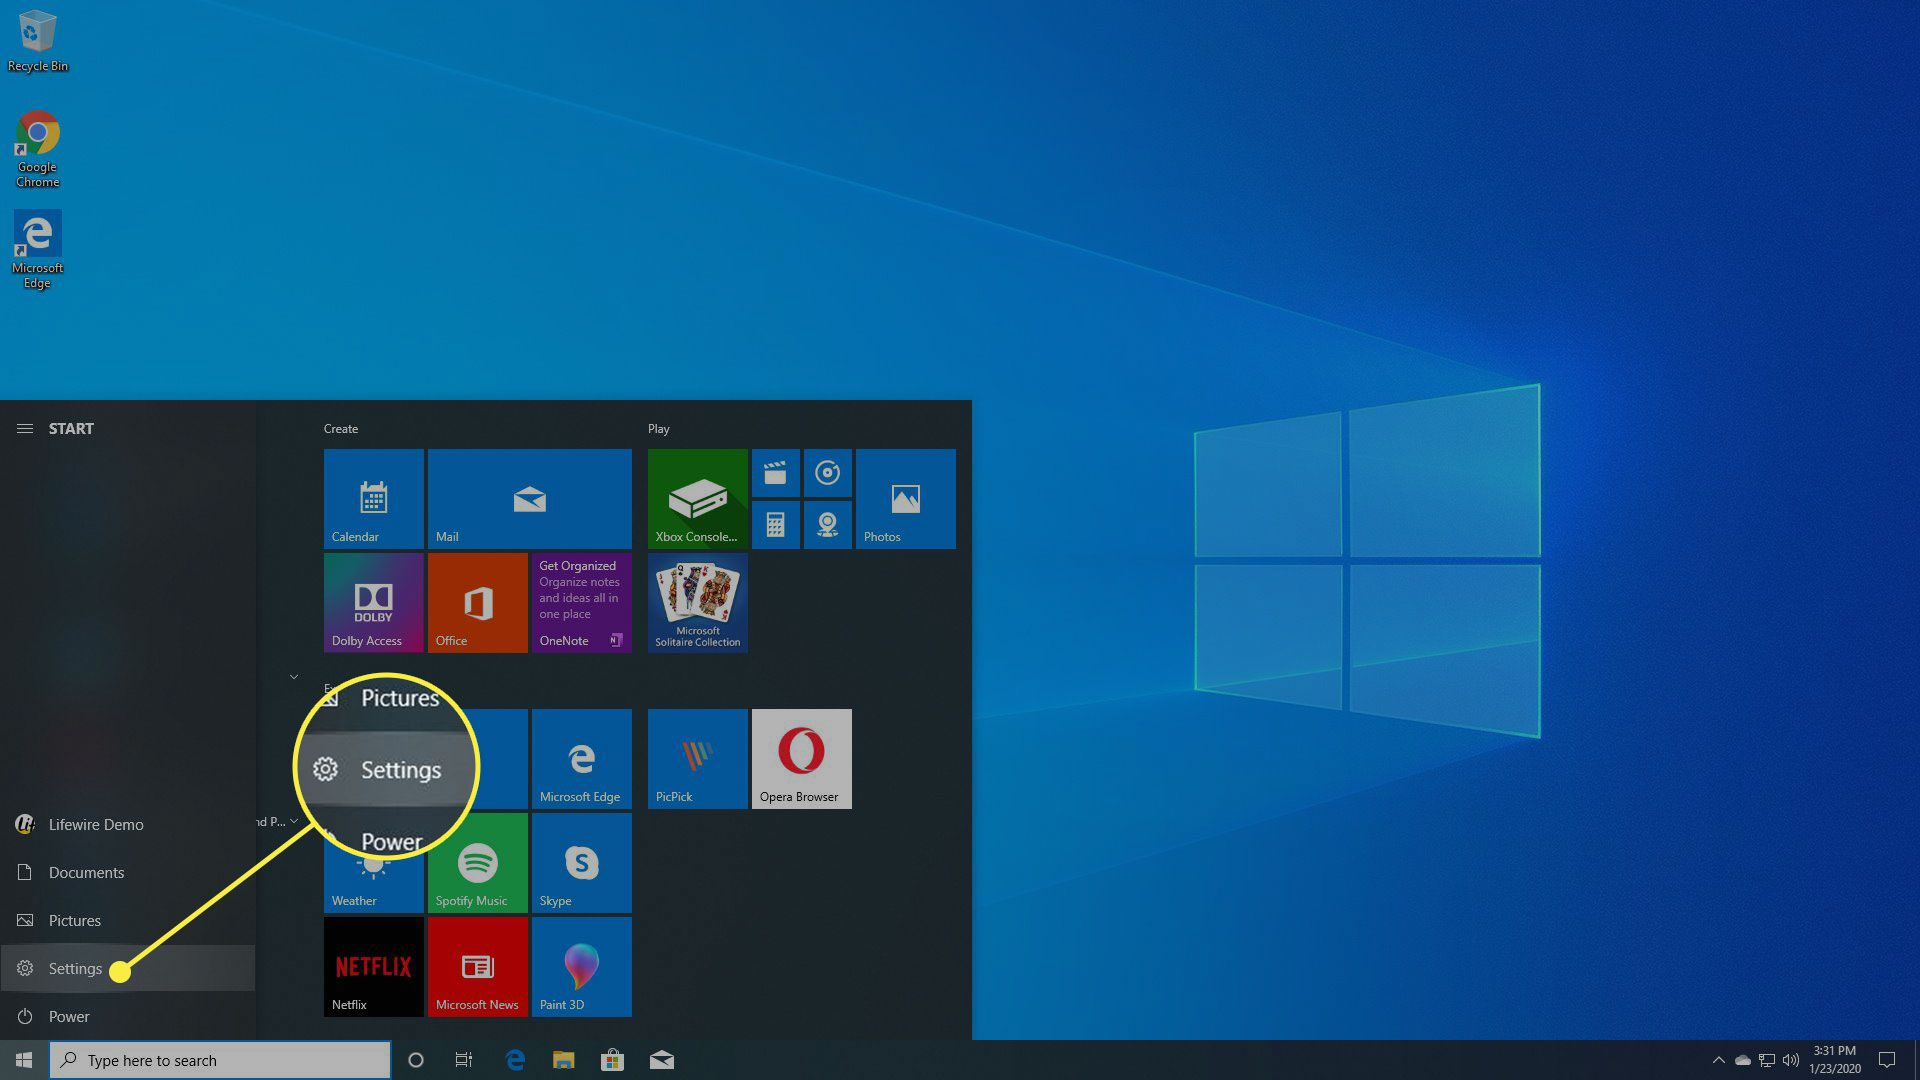 The Windows 10 Start menu with Settings highlighted